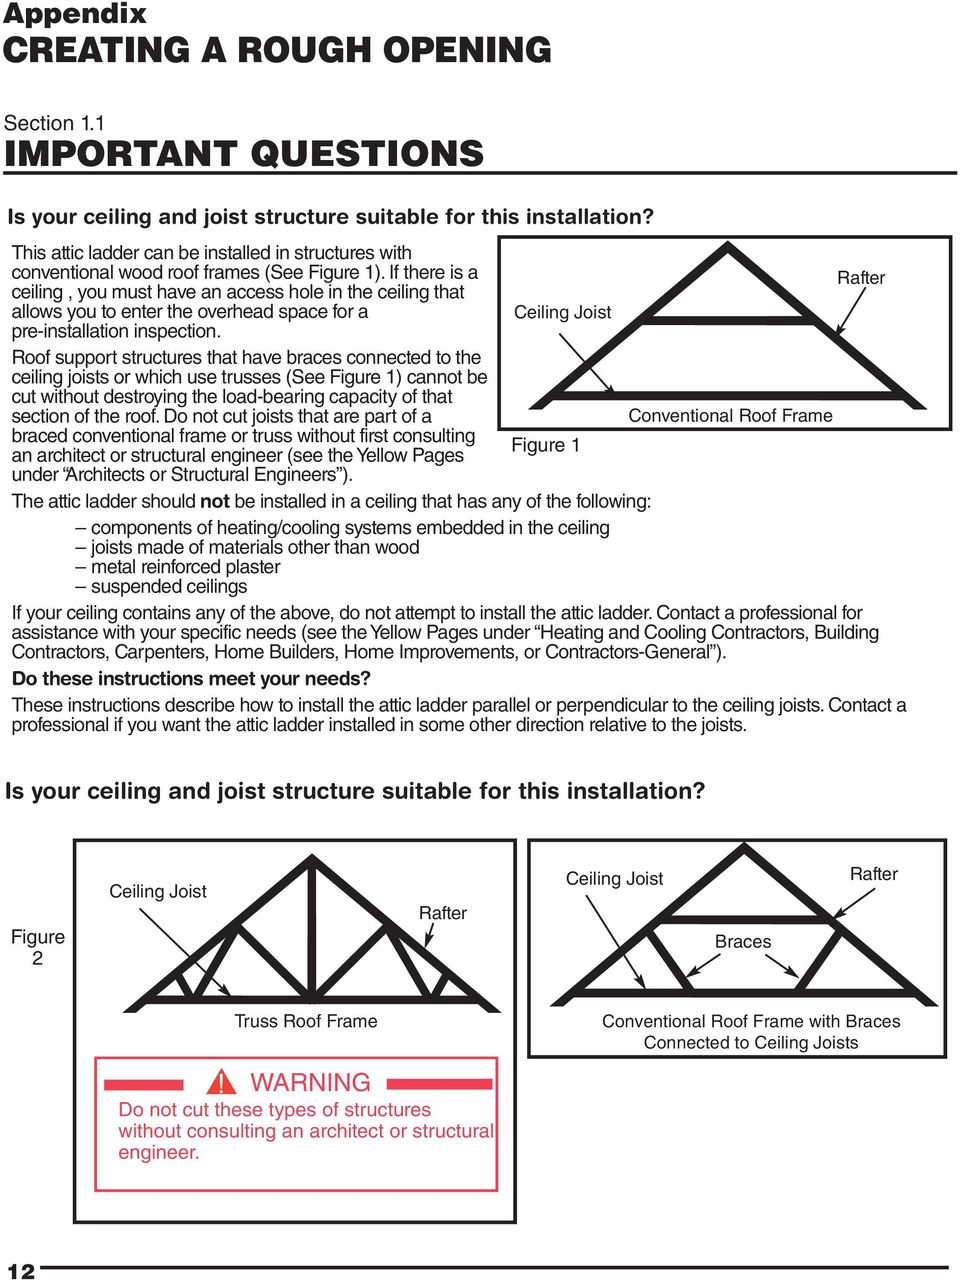 If there is a Rafter ceiling, you must have an access hole in the ceiling that allows you to enter the overhead space for a Ceiling Joist pre-installation inspection.